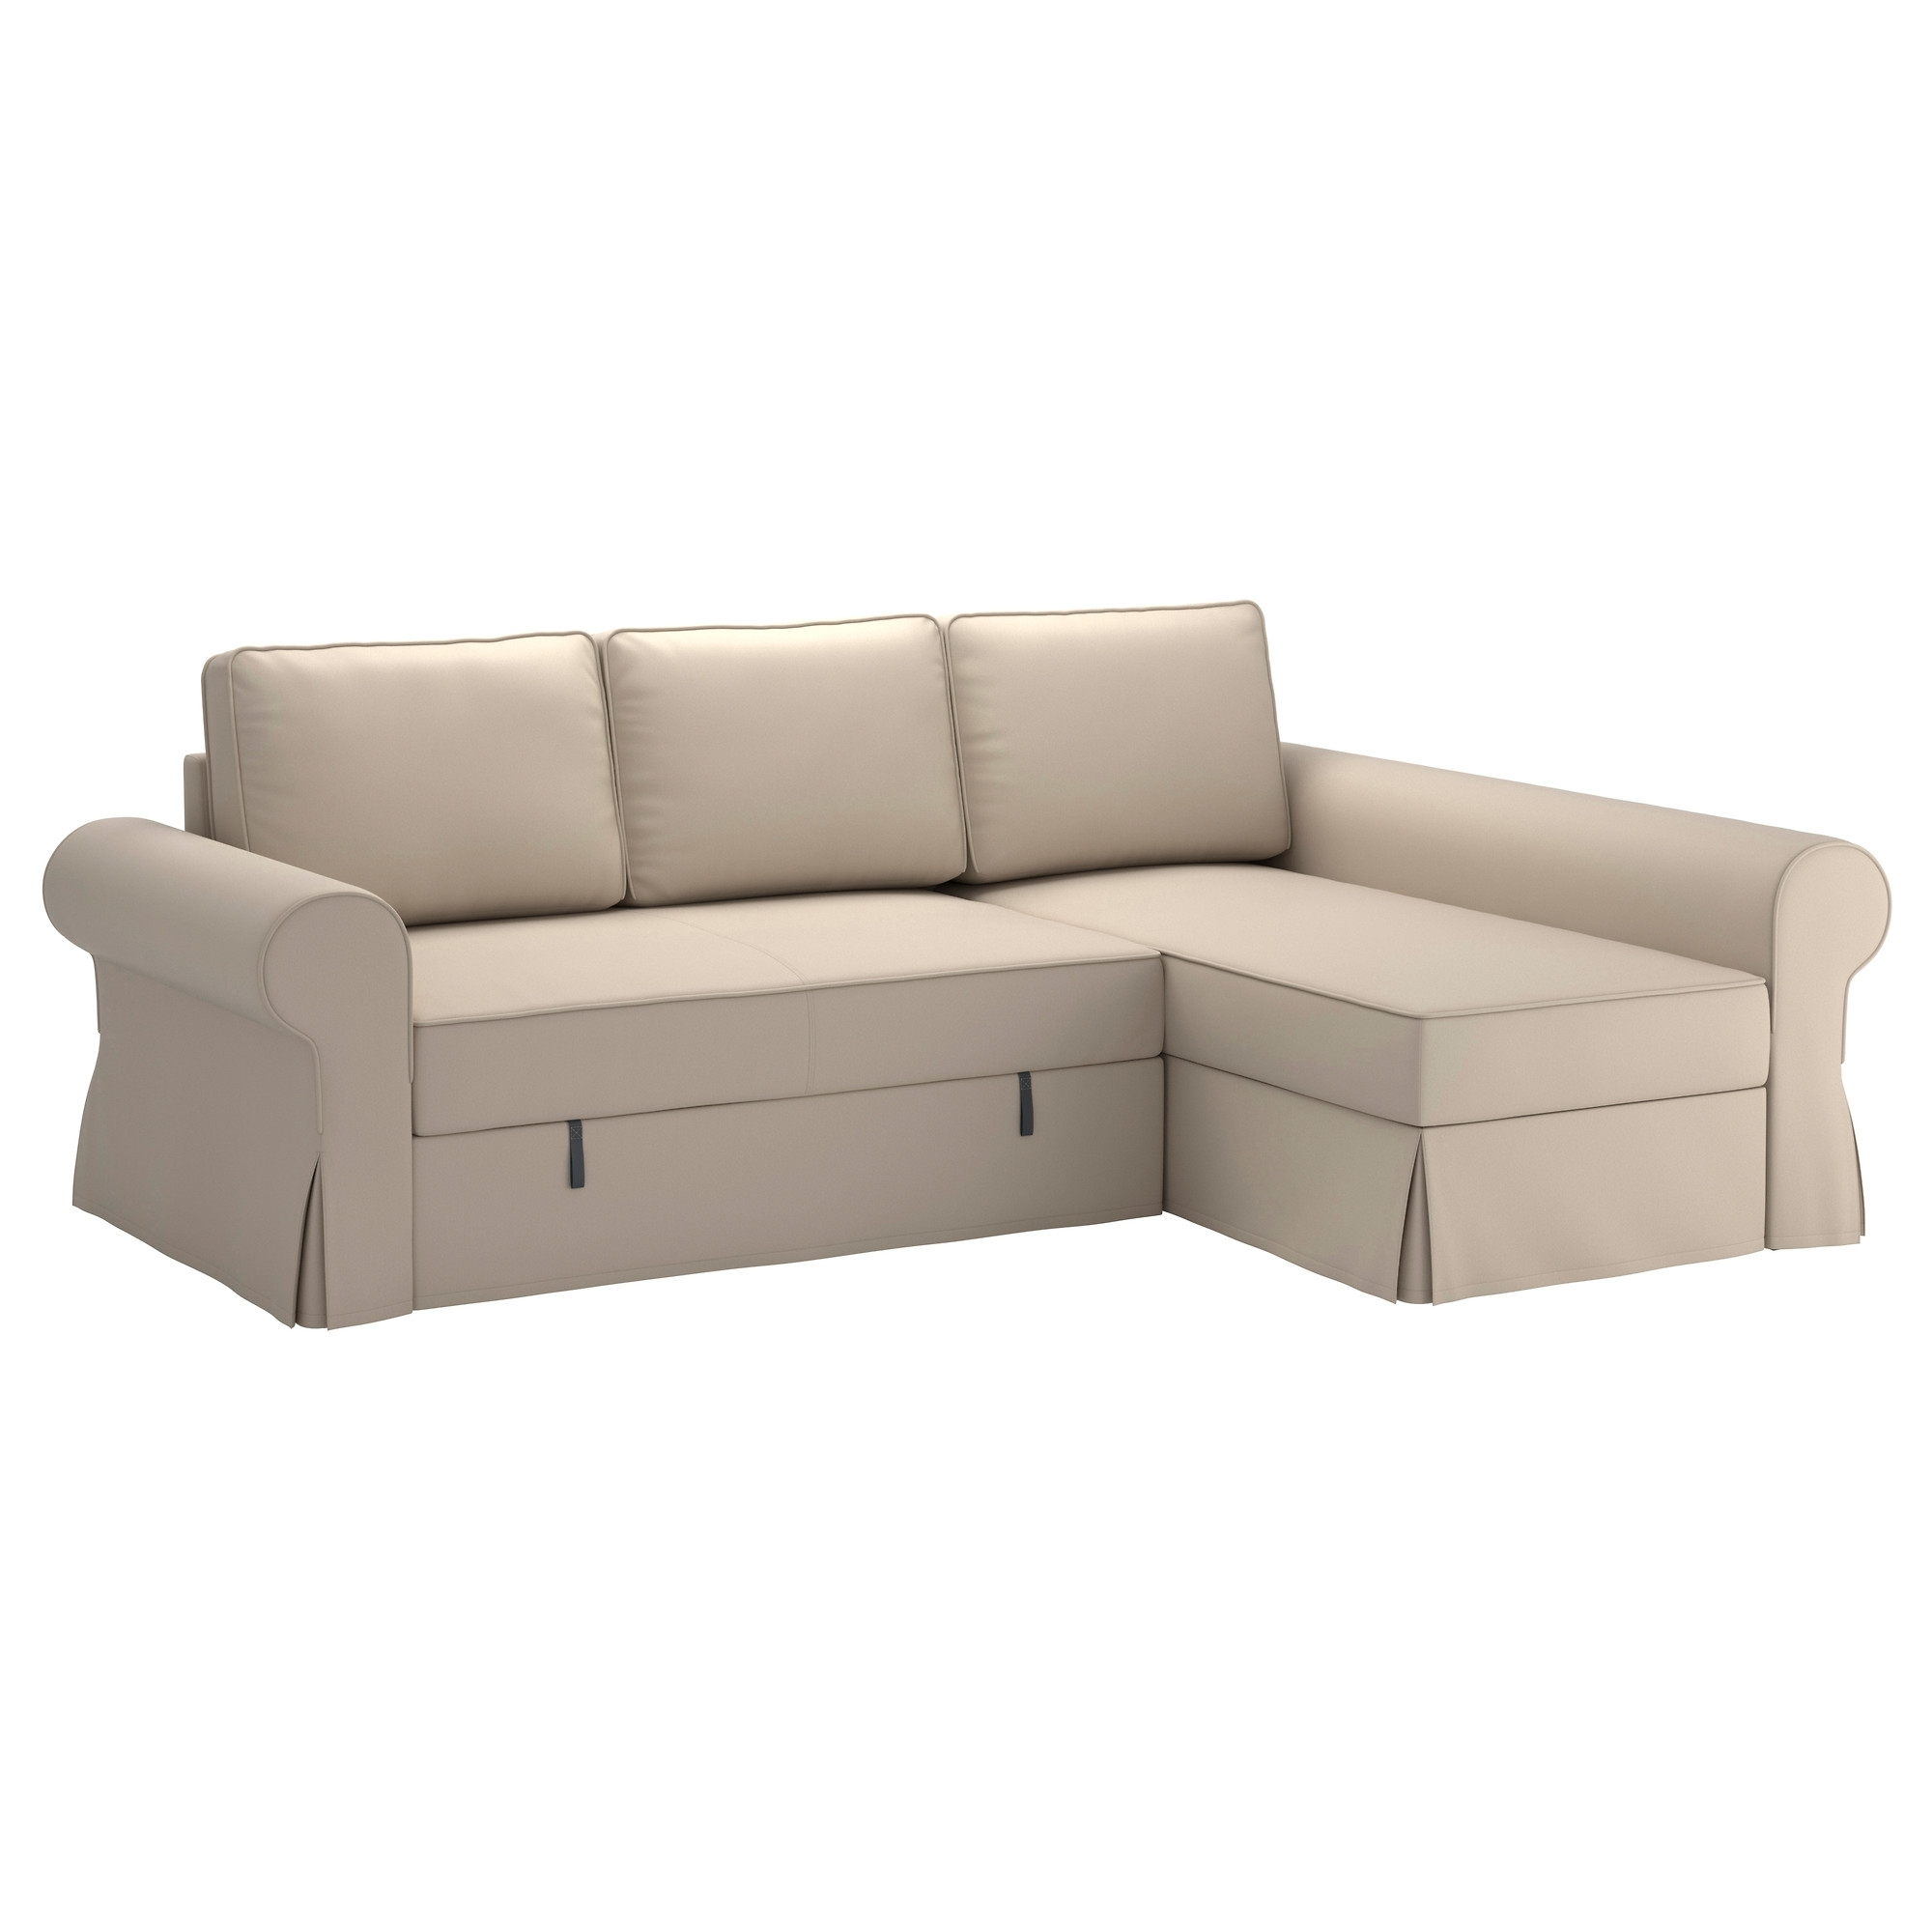 Ikea Sectional Sofa Beds For 2018 Sofa Bed Ikea (Gallery 18 of 20)